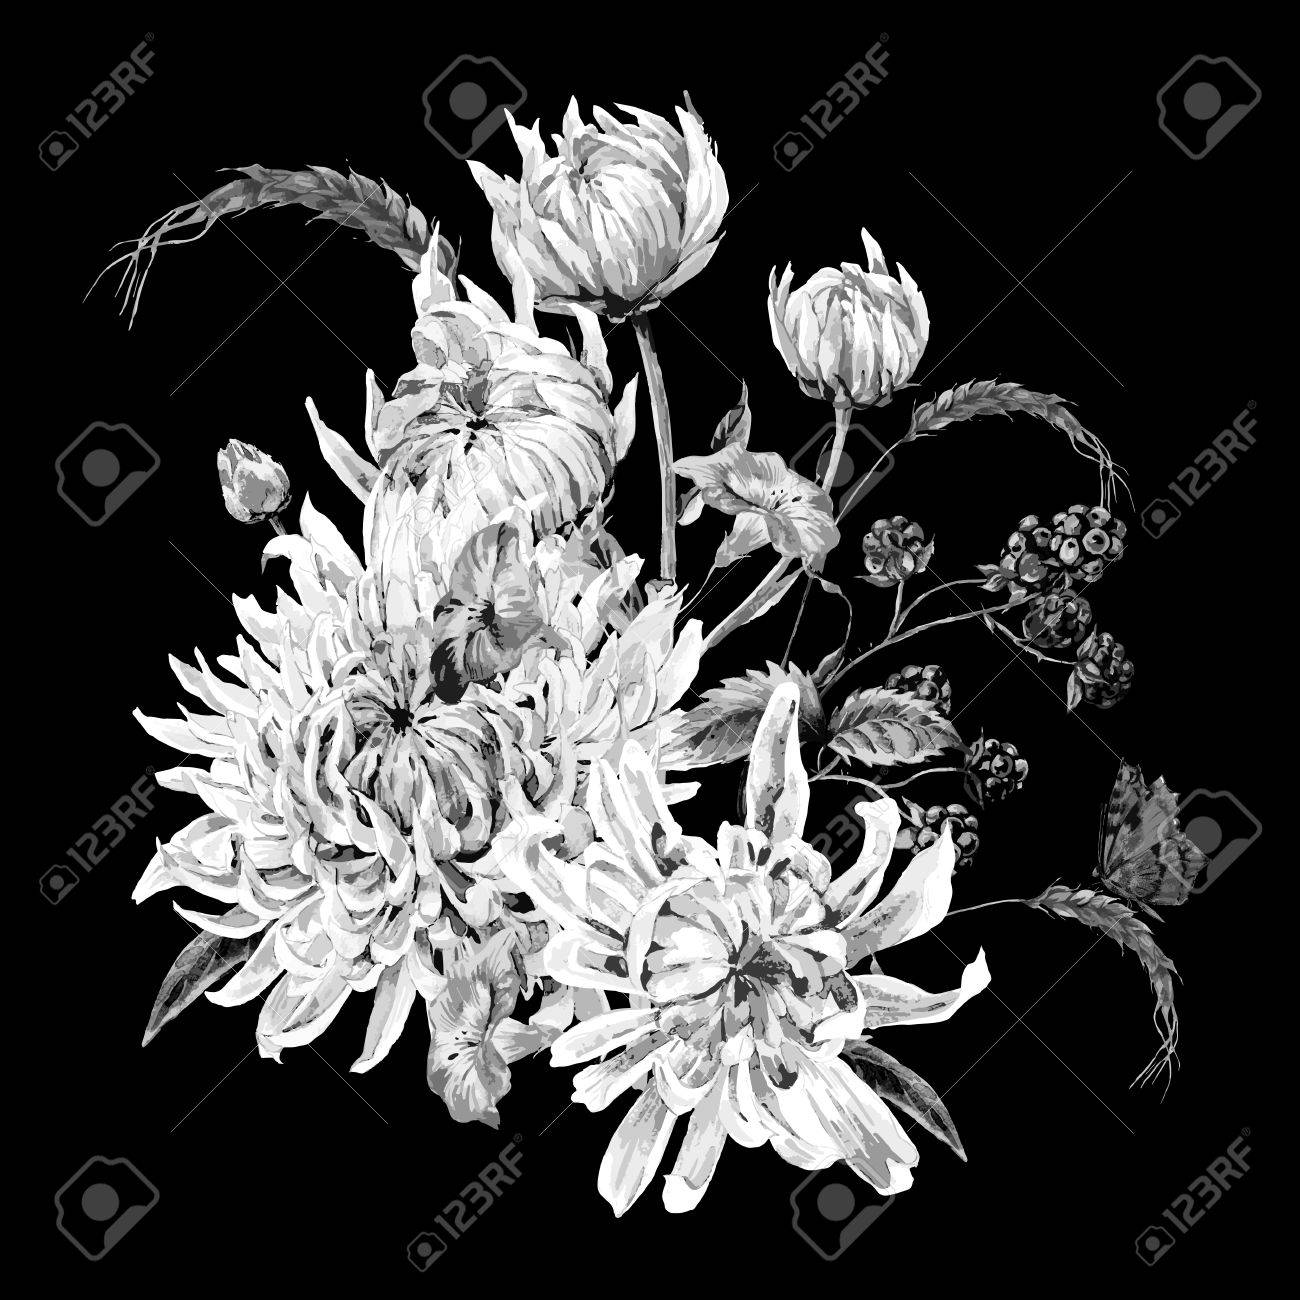 Black And White Vintage Floral Card With Bouquet Of Chrysanthemums Wild Flowers Butterflies